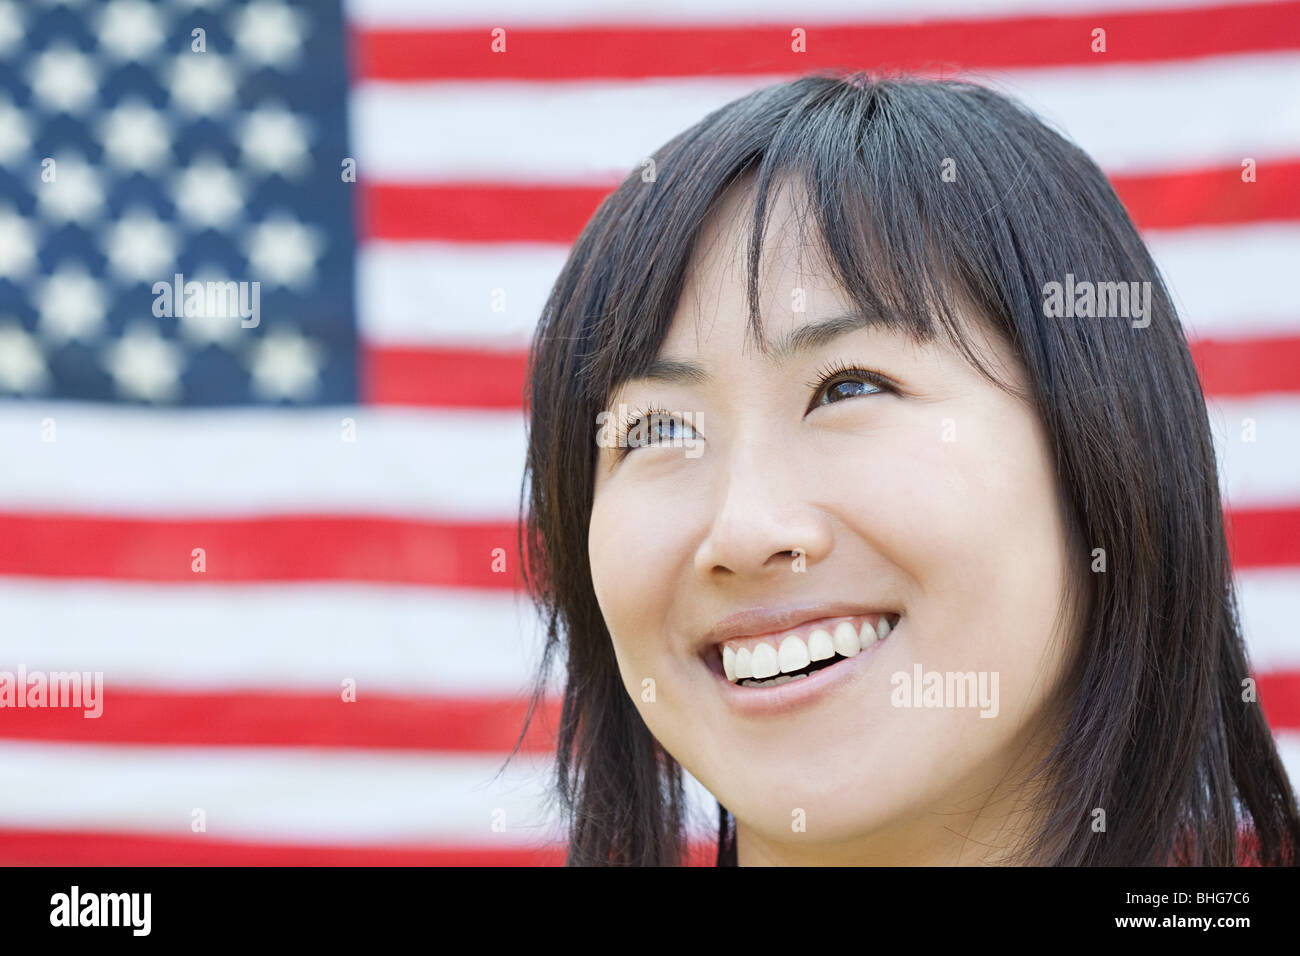 Woman and american flag - Stock Image